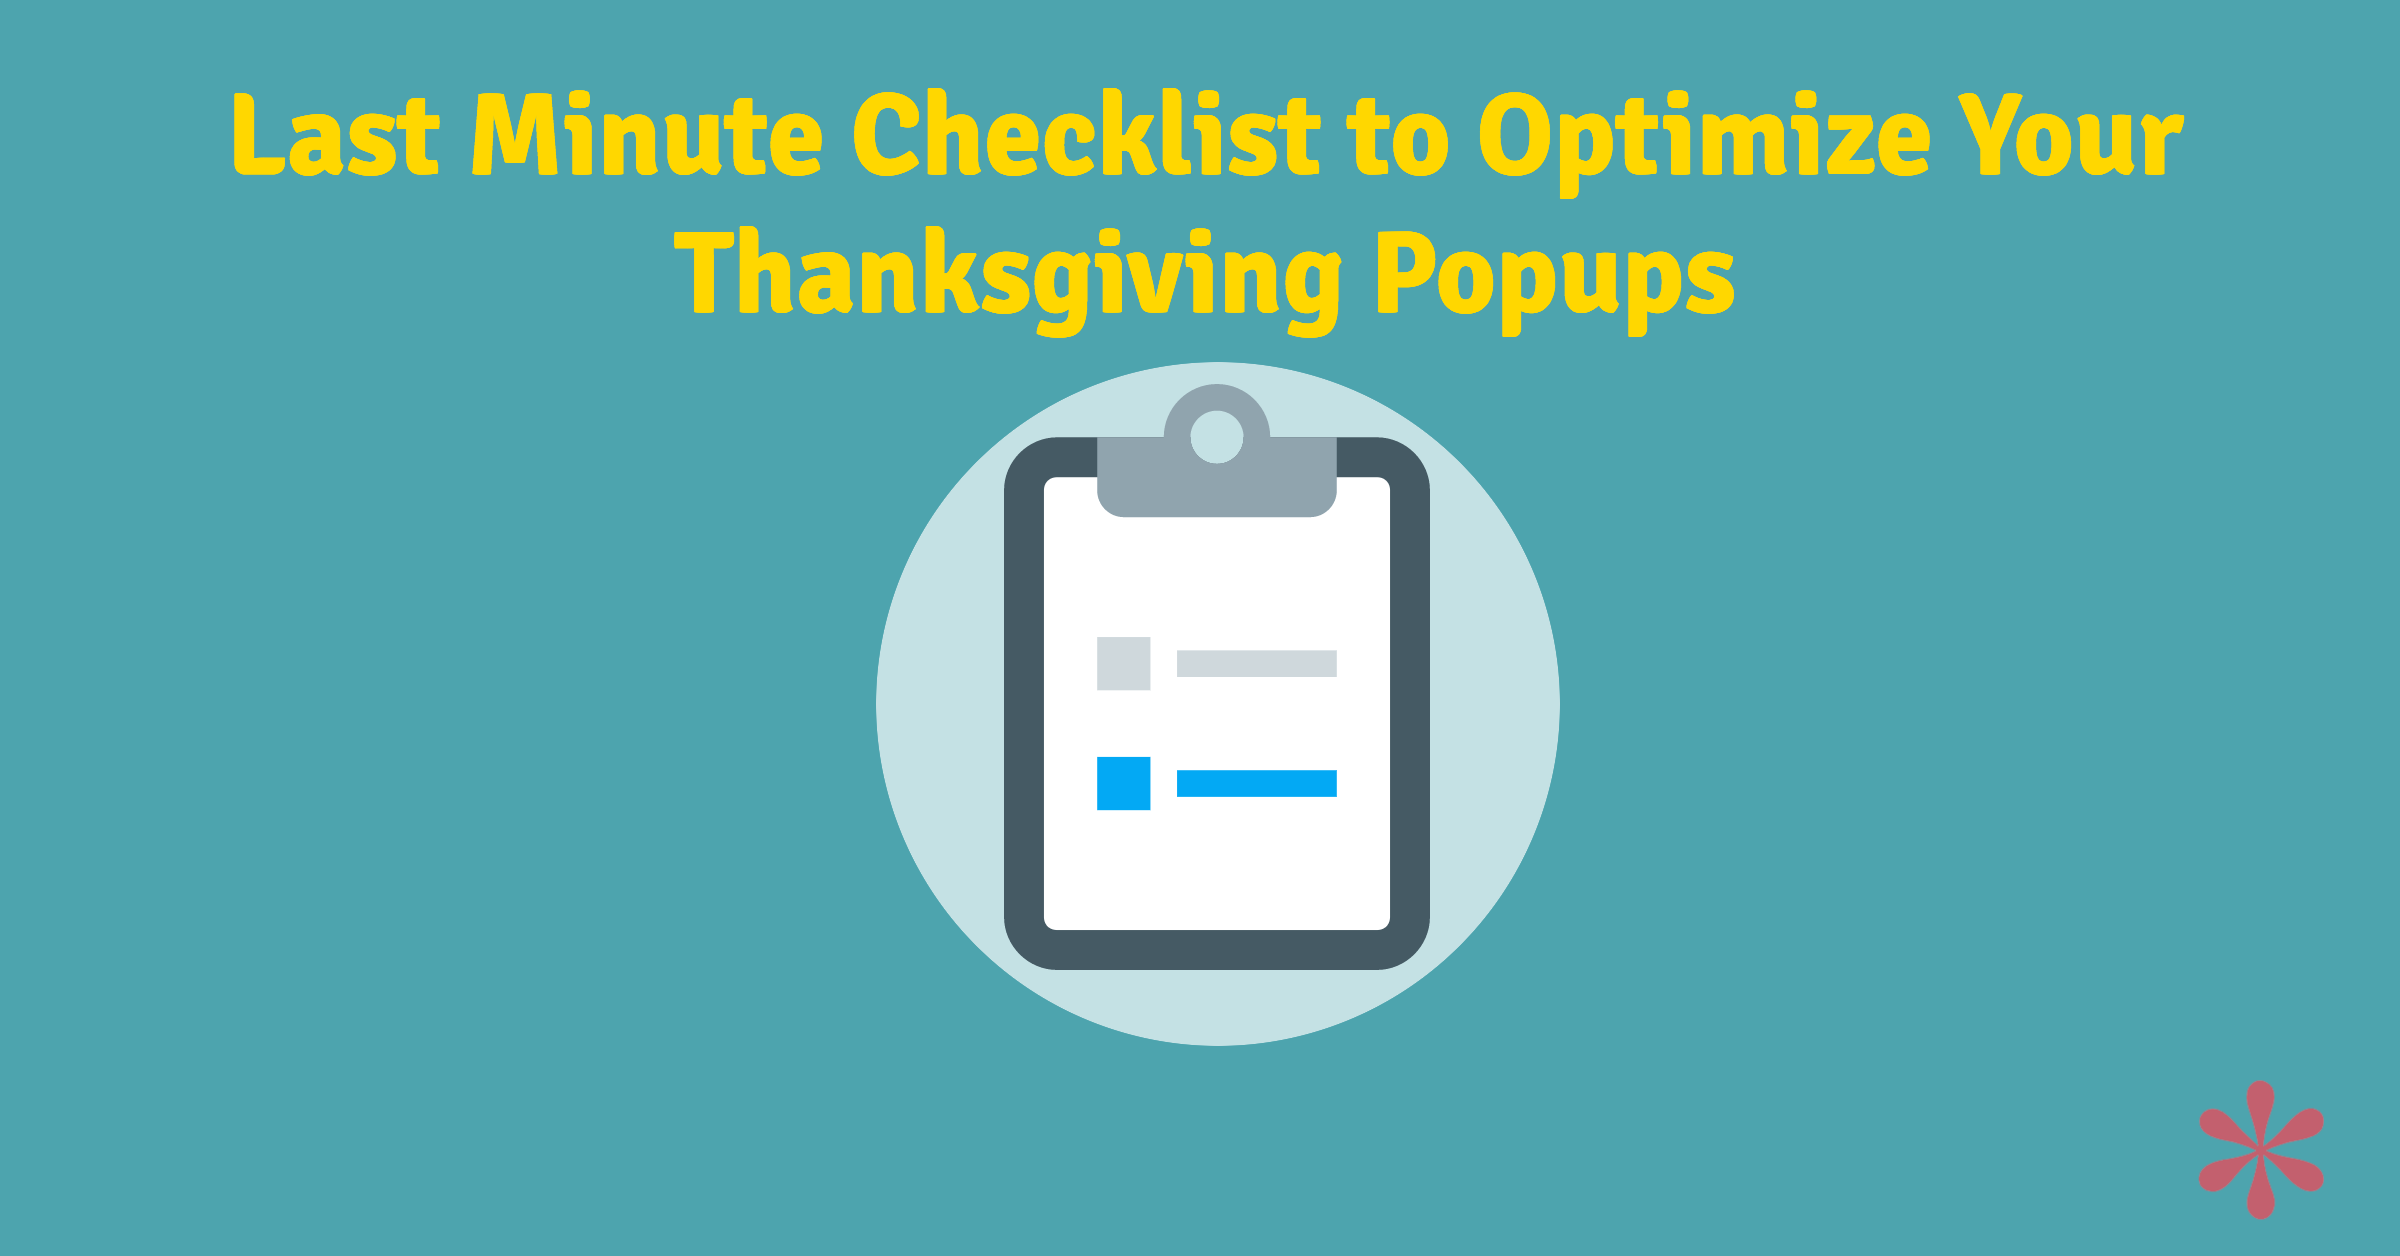 Thanksgiving popups checklist